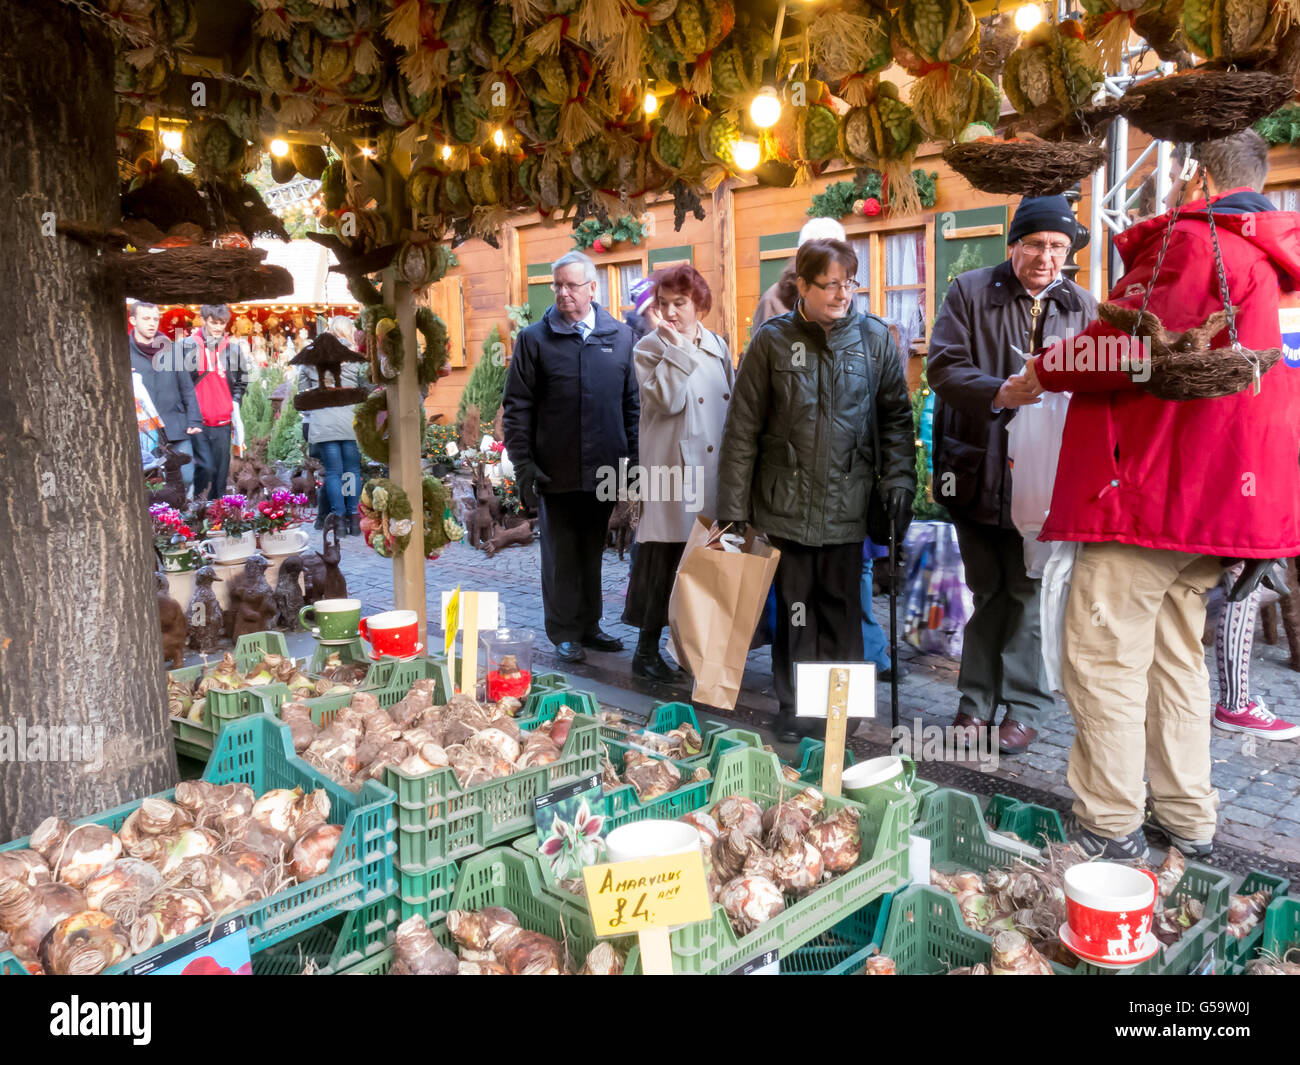 Christmas shopping on Albert Square, Manchester Xmas Markets, Manchester, England, UK - Stock Image